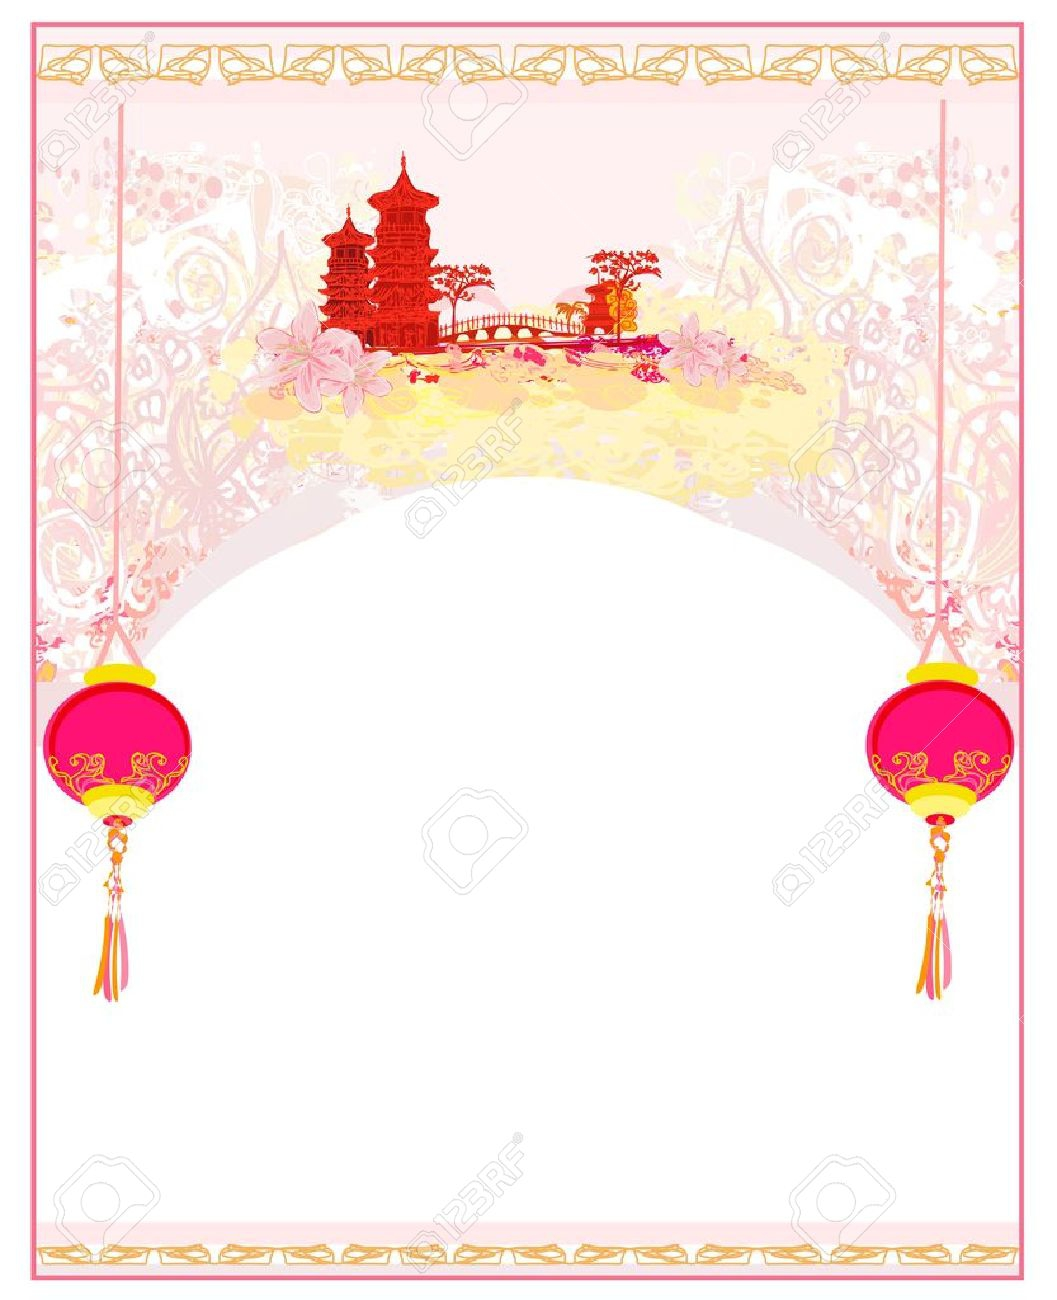 Chinese clipart border. Asian download